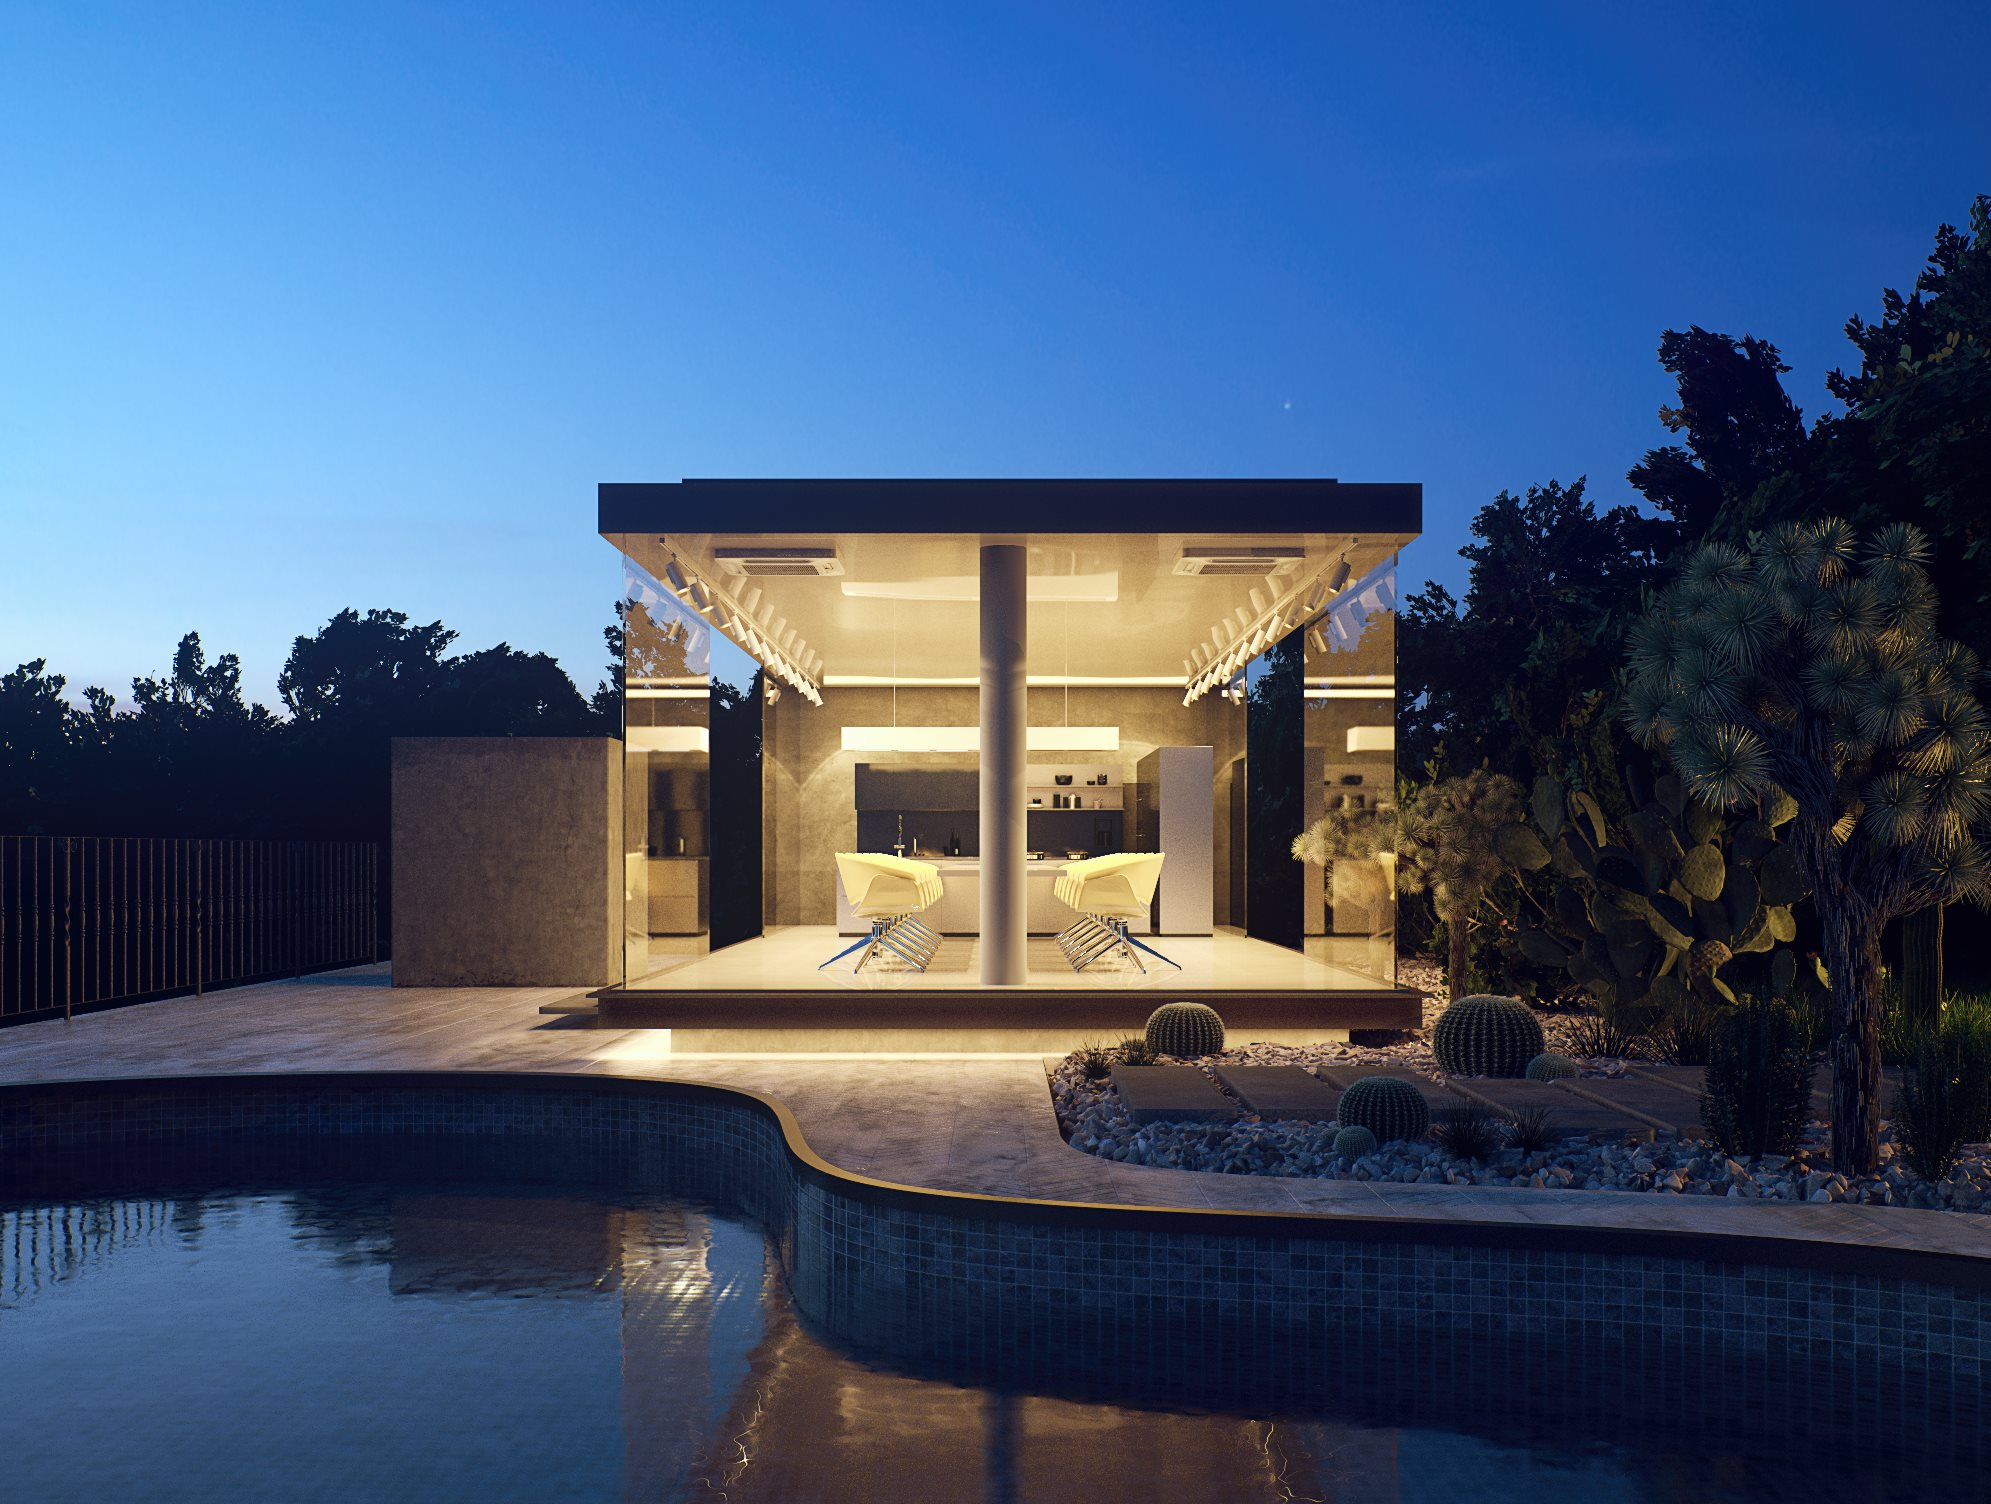 Making of IRACEMA in the Dusk  3D Architectural